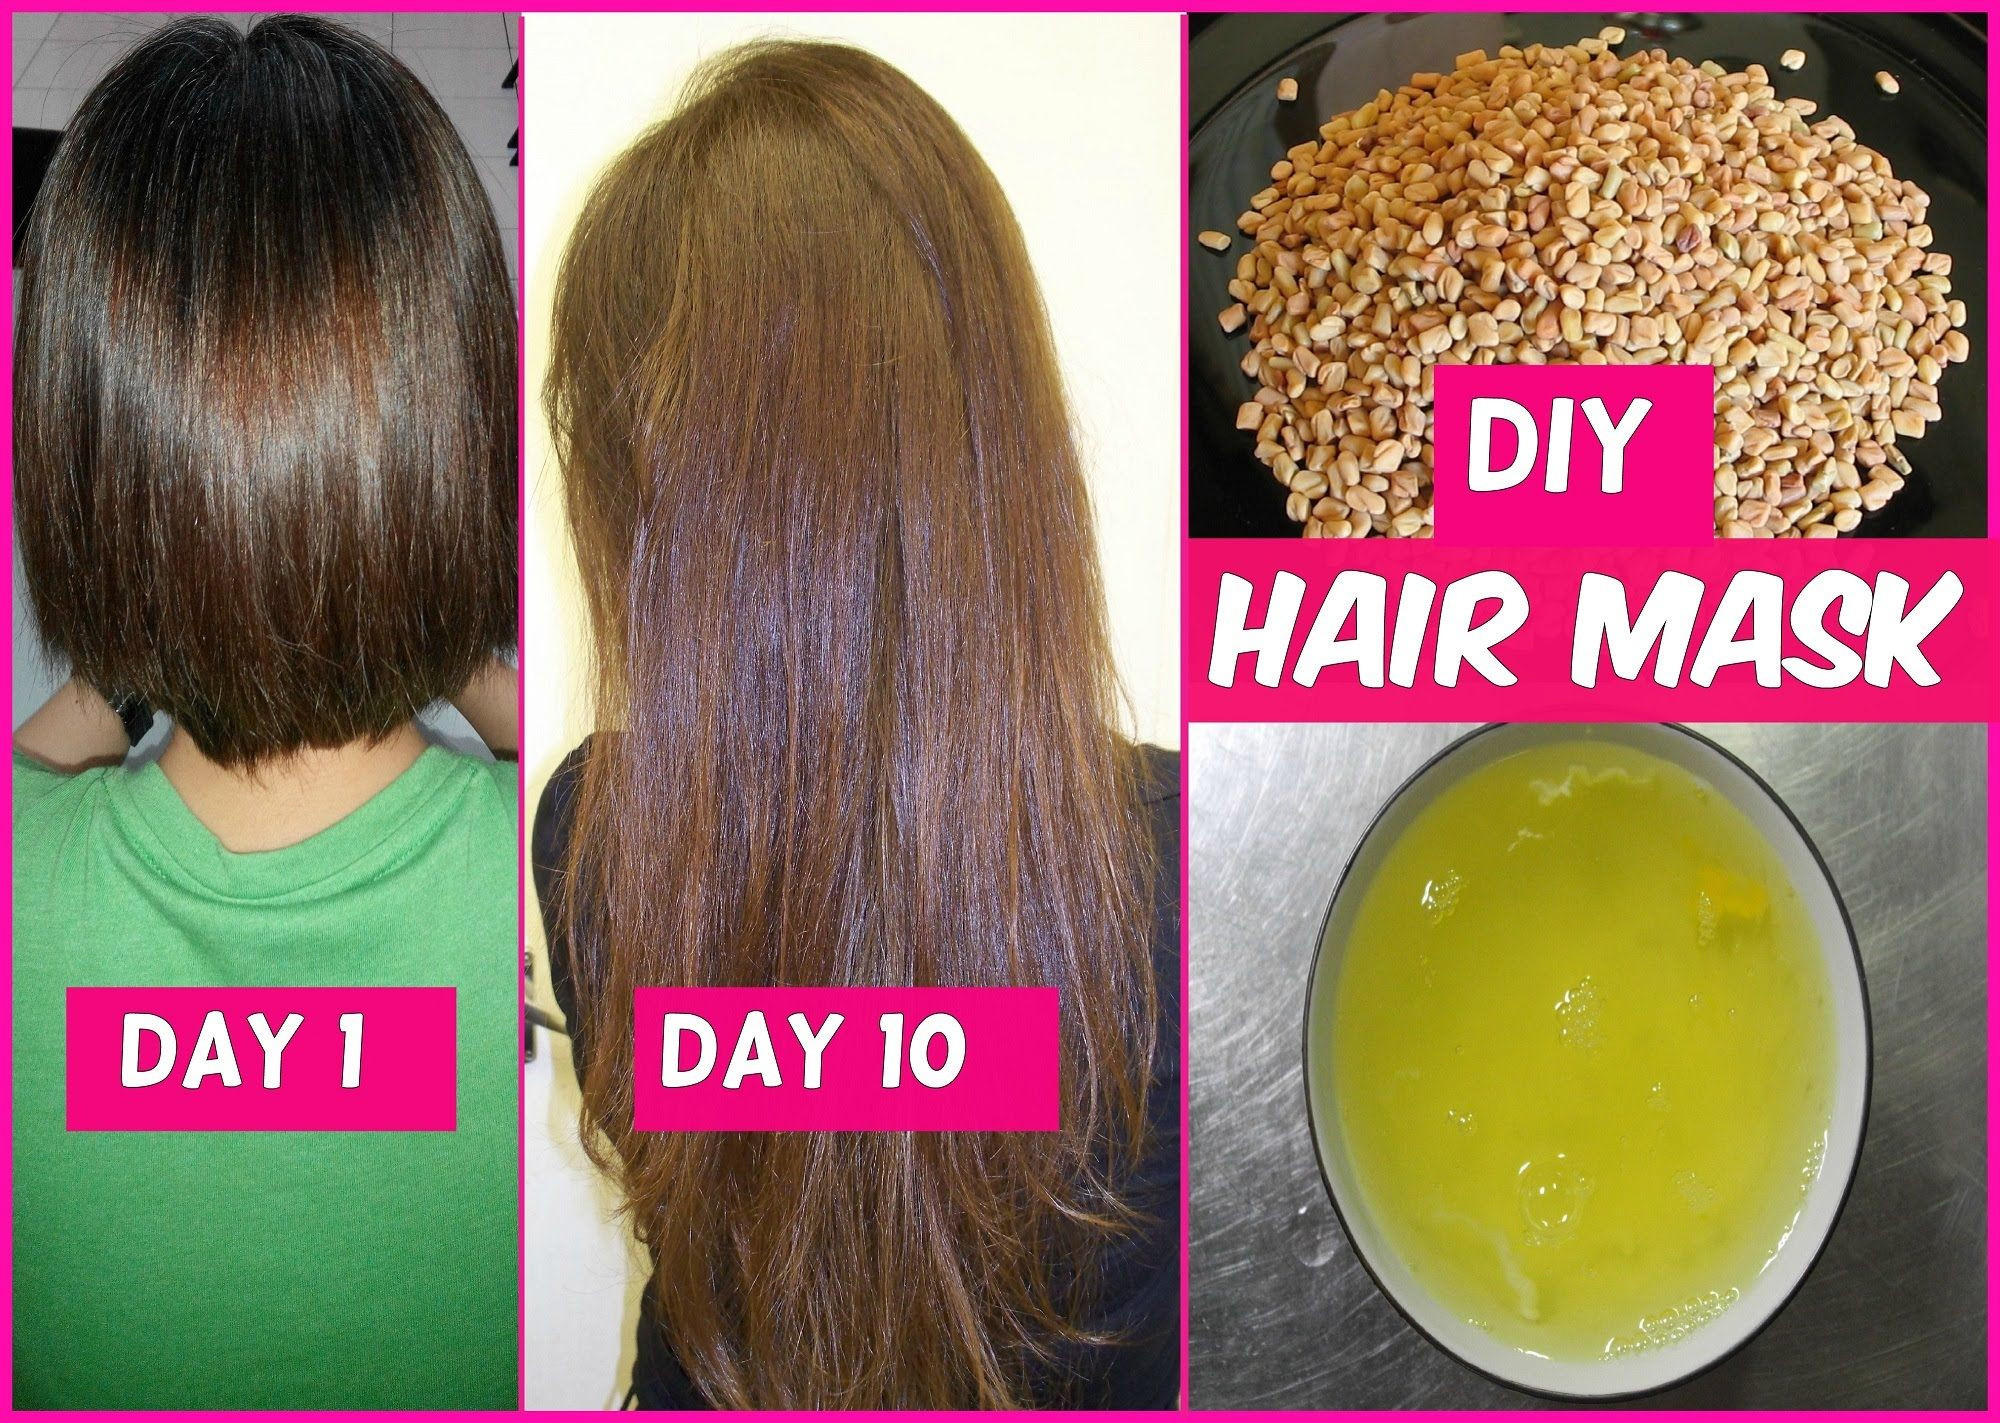 Best ideas about DIY Hair Growth Mask . Save or Pin DIY Hair Mask for Long Hair Growth in 1 Week Now.